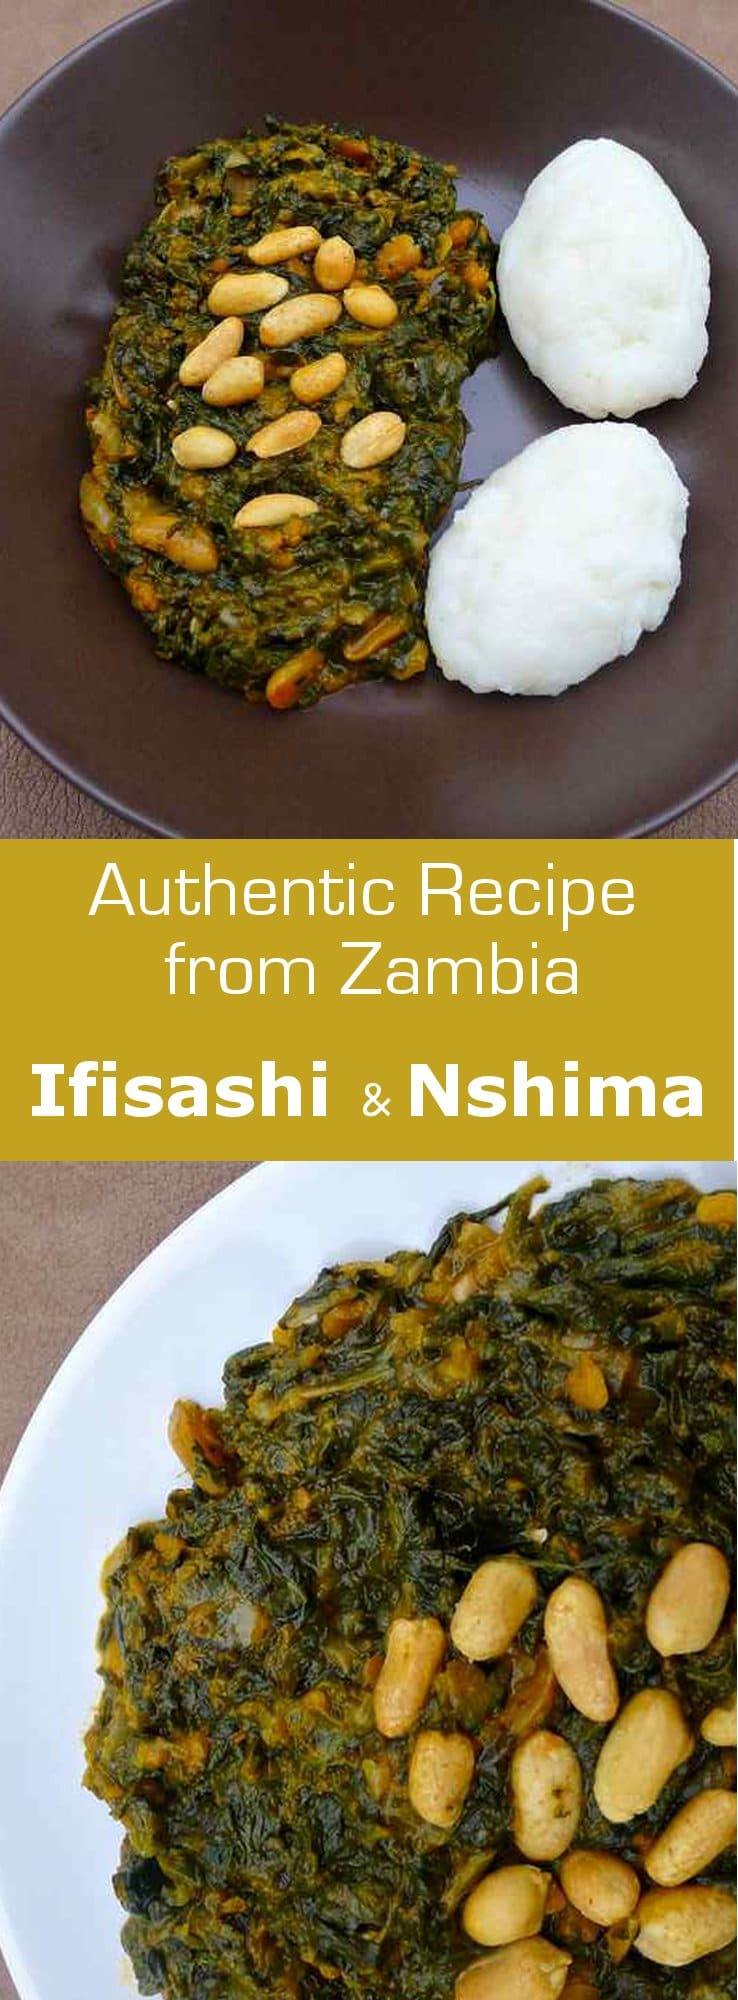 Ifisashi, a traditional vegetarian dish from Zambia, is typically served with nshima. #vegetarian #vegan #african #africa #zambia